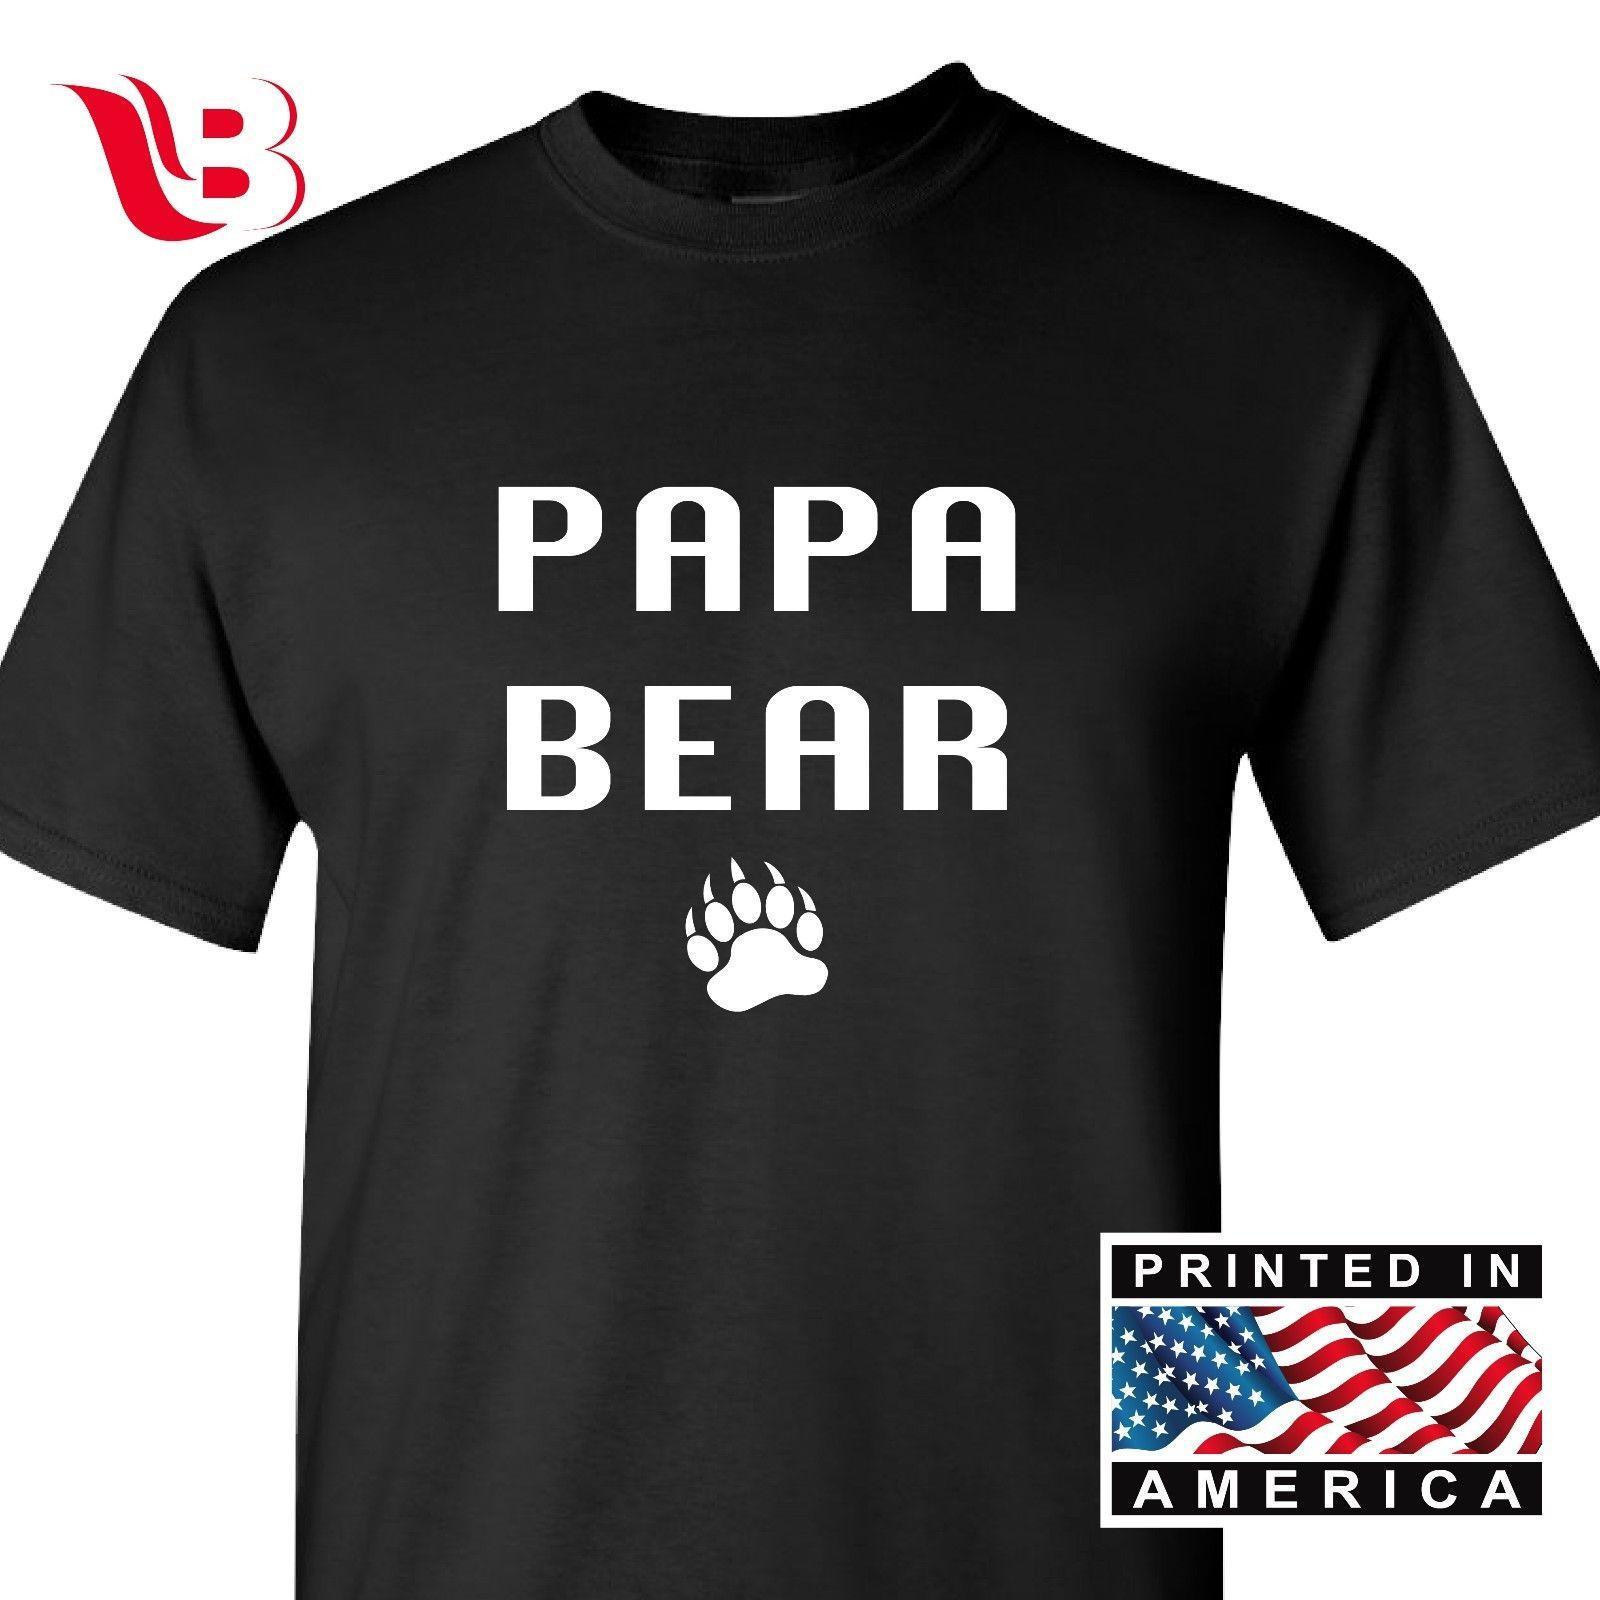 ee0e2d60cc Papa Bear Funny T Shirt Cute Father'S Day Gift Shirt New Dad Tee Gift Sm  3Xlg Latest T Shirt Designs Coolest Shirts From Integrity067, $11.63|  DHgate.Com